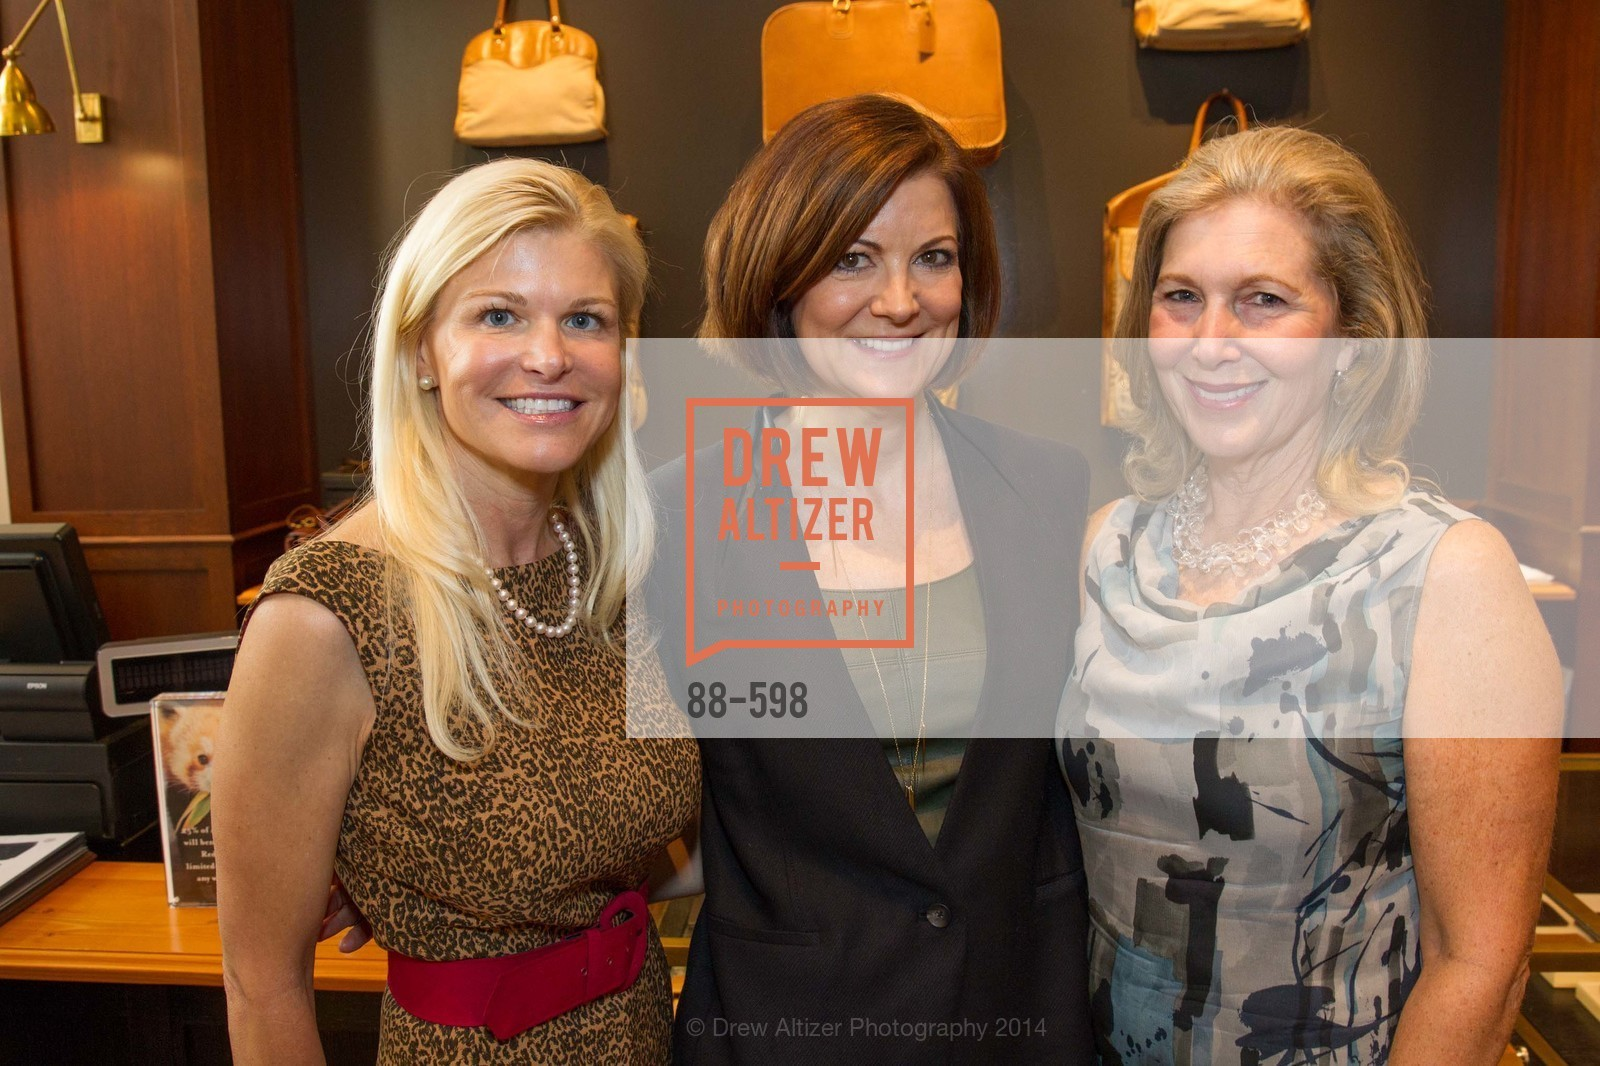 Lori Shigekane, Debra Paterson, Janie Friend, GHURKA FALL FASHION Press Preview Honoring the ZOO BOARD, US, October 8th, 2014,Drew Altizer, Drew Altizer Photography, full-service agency, private events, San Francisco photographer, photographer california